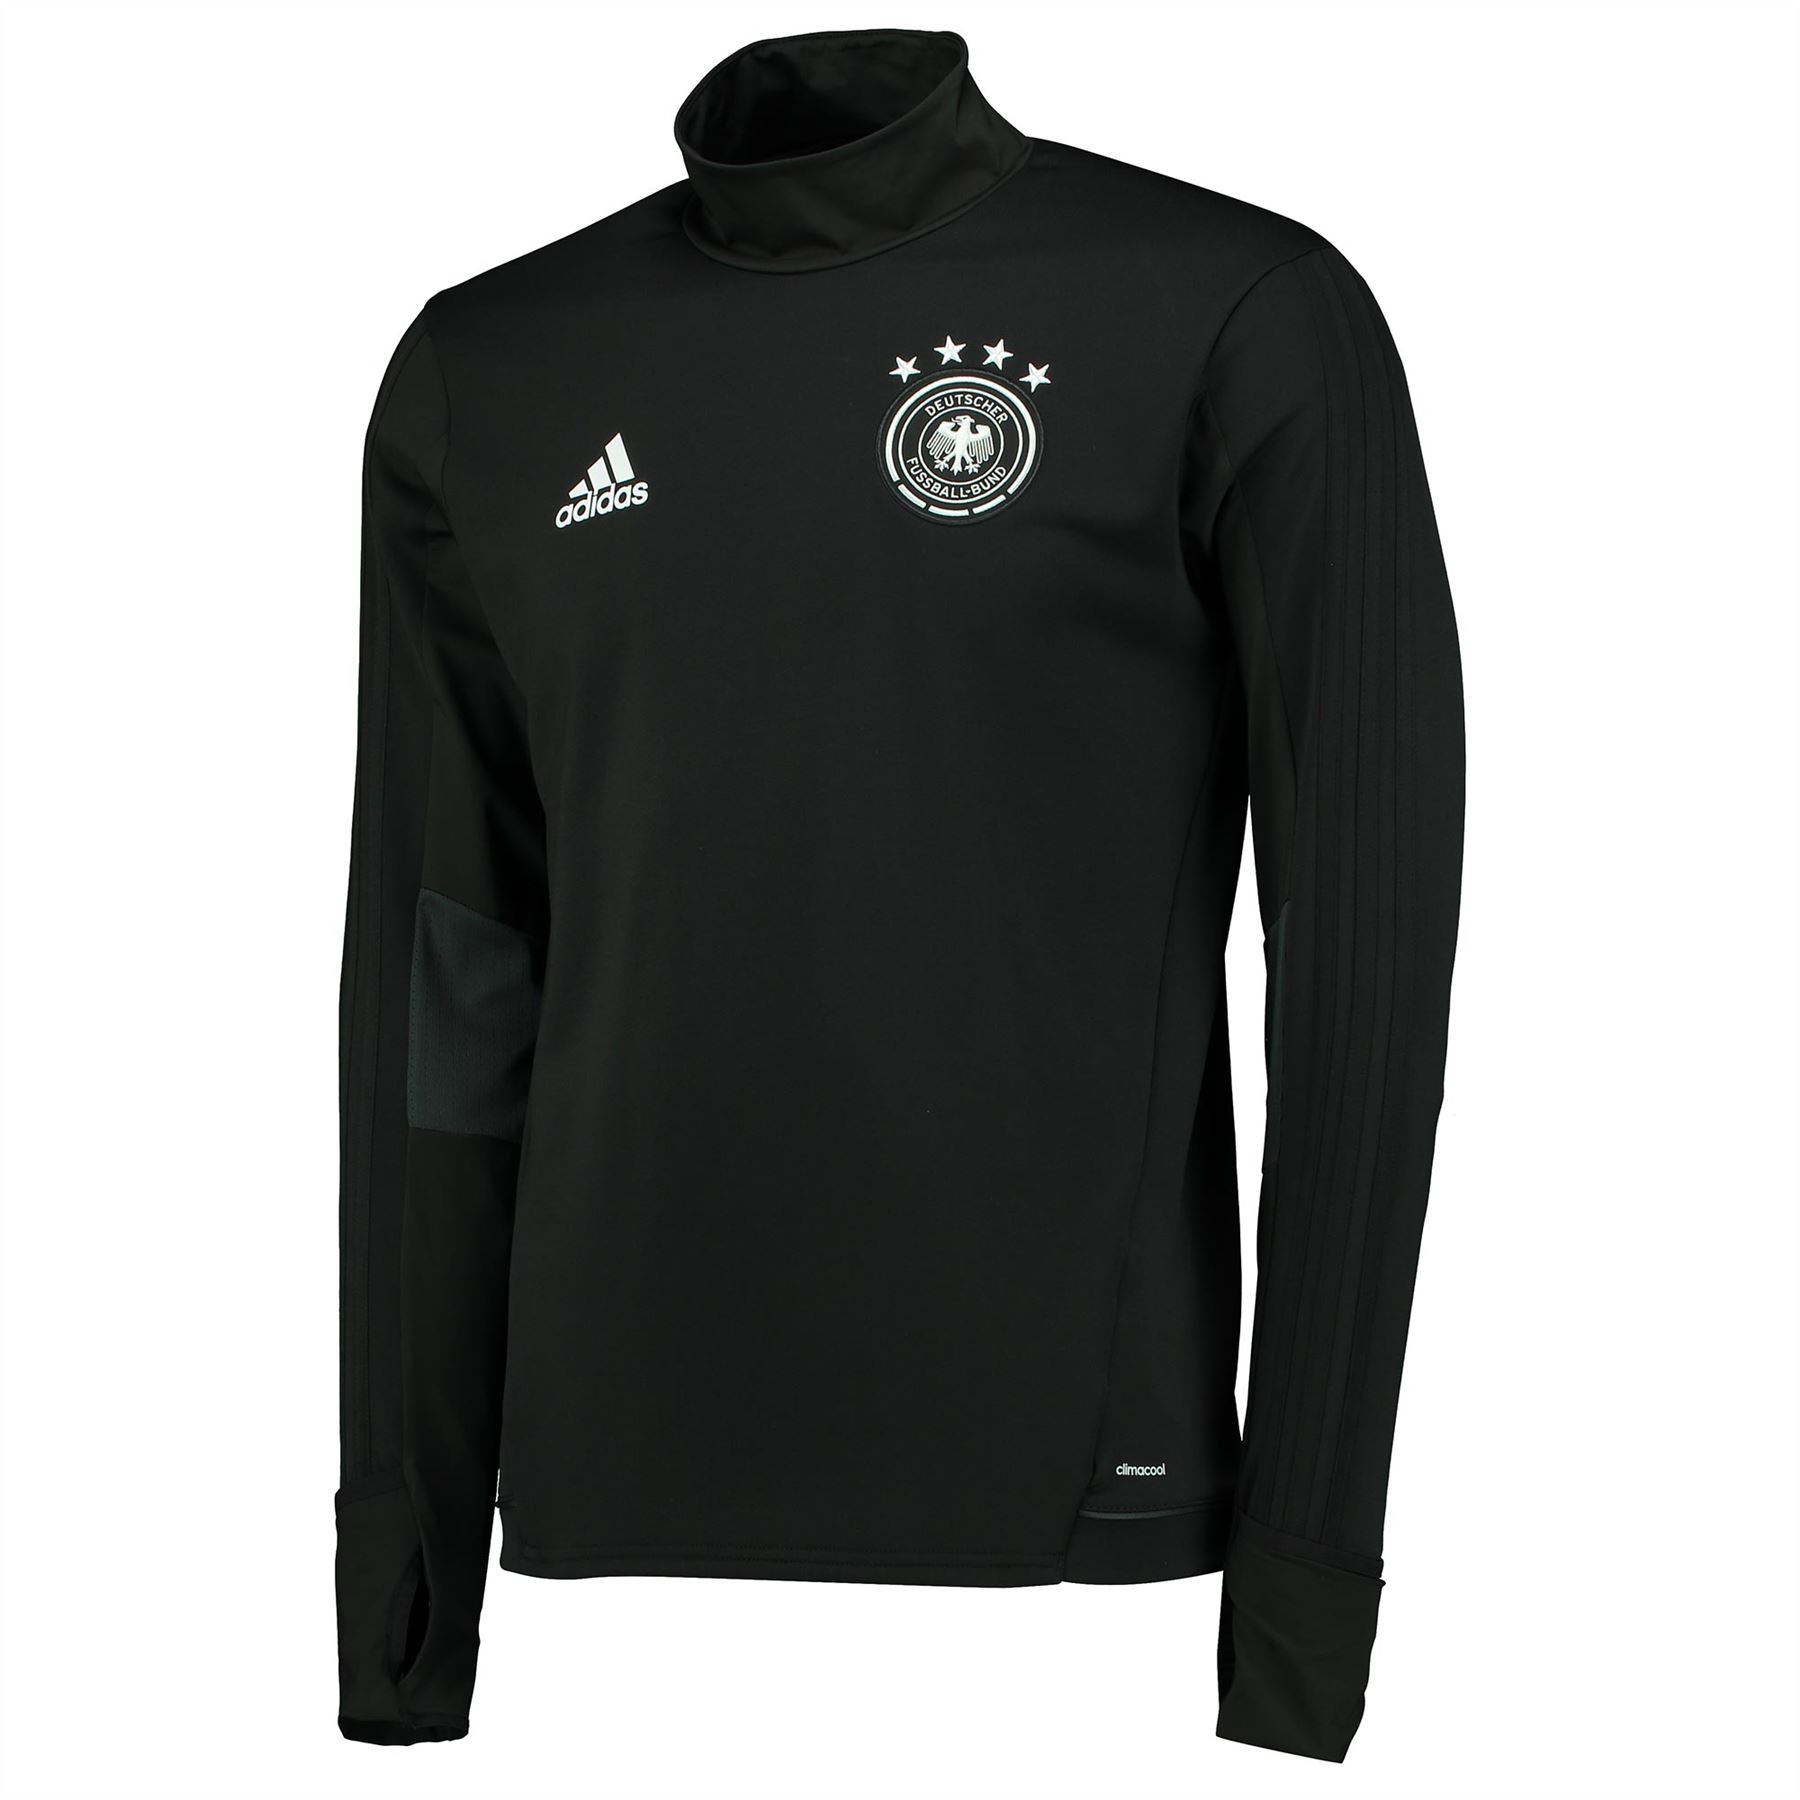 Details about adidas Mens Gents Football Soccer Germany Long Sleeve Training  Shirt Top - Black 99d951aa6